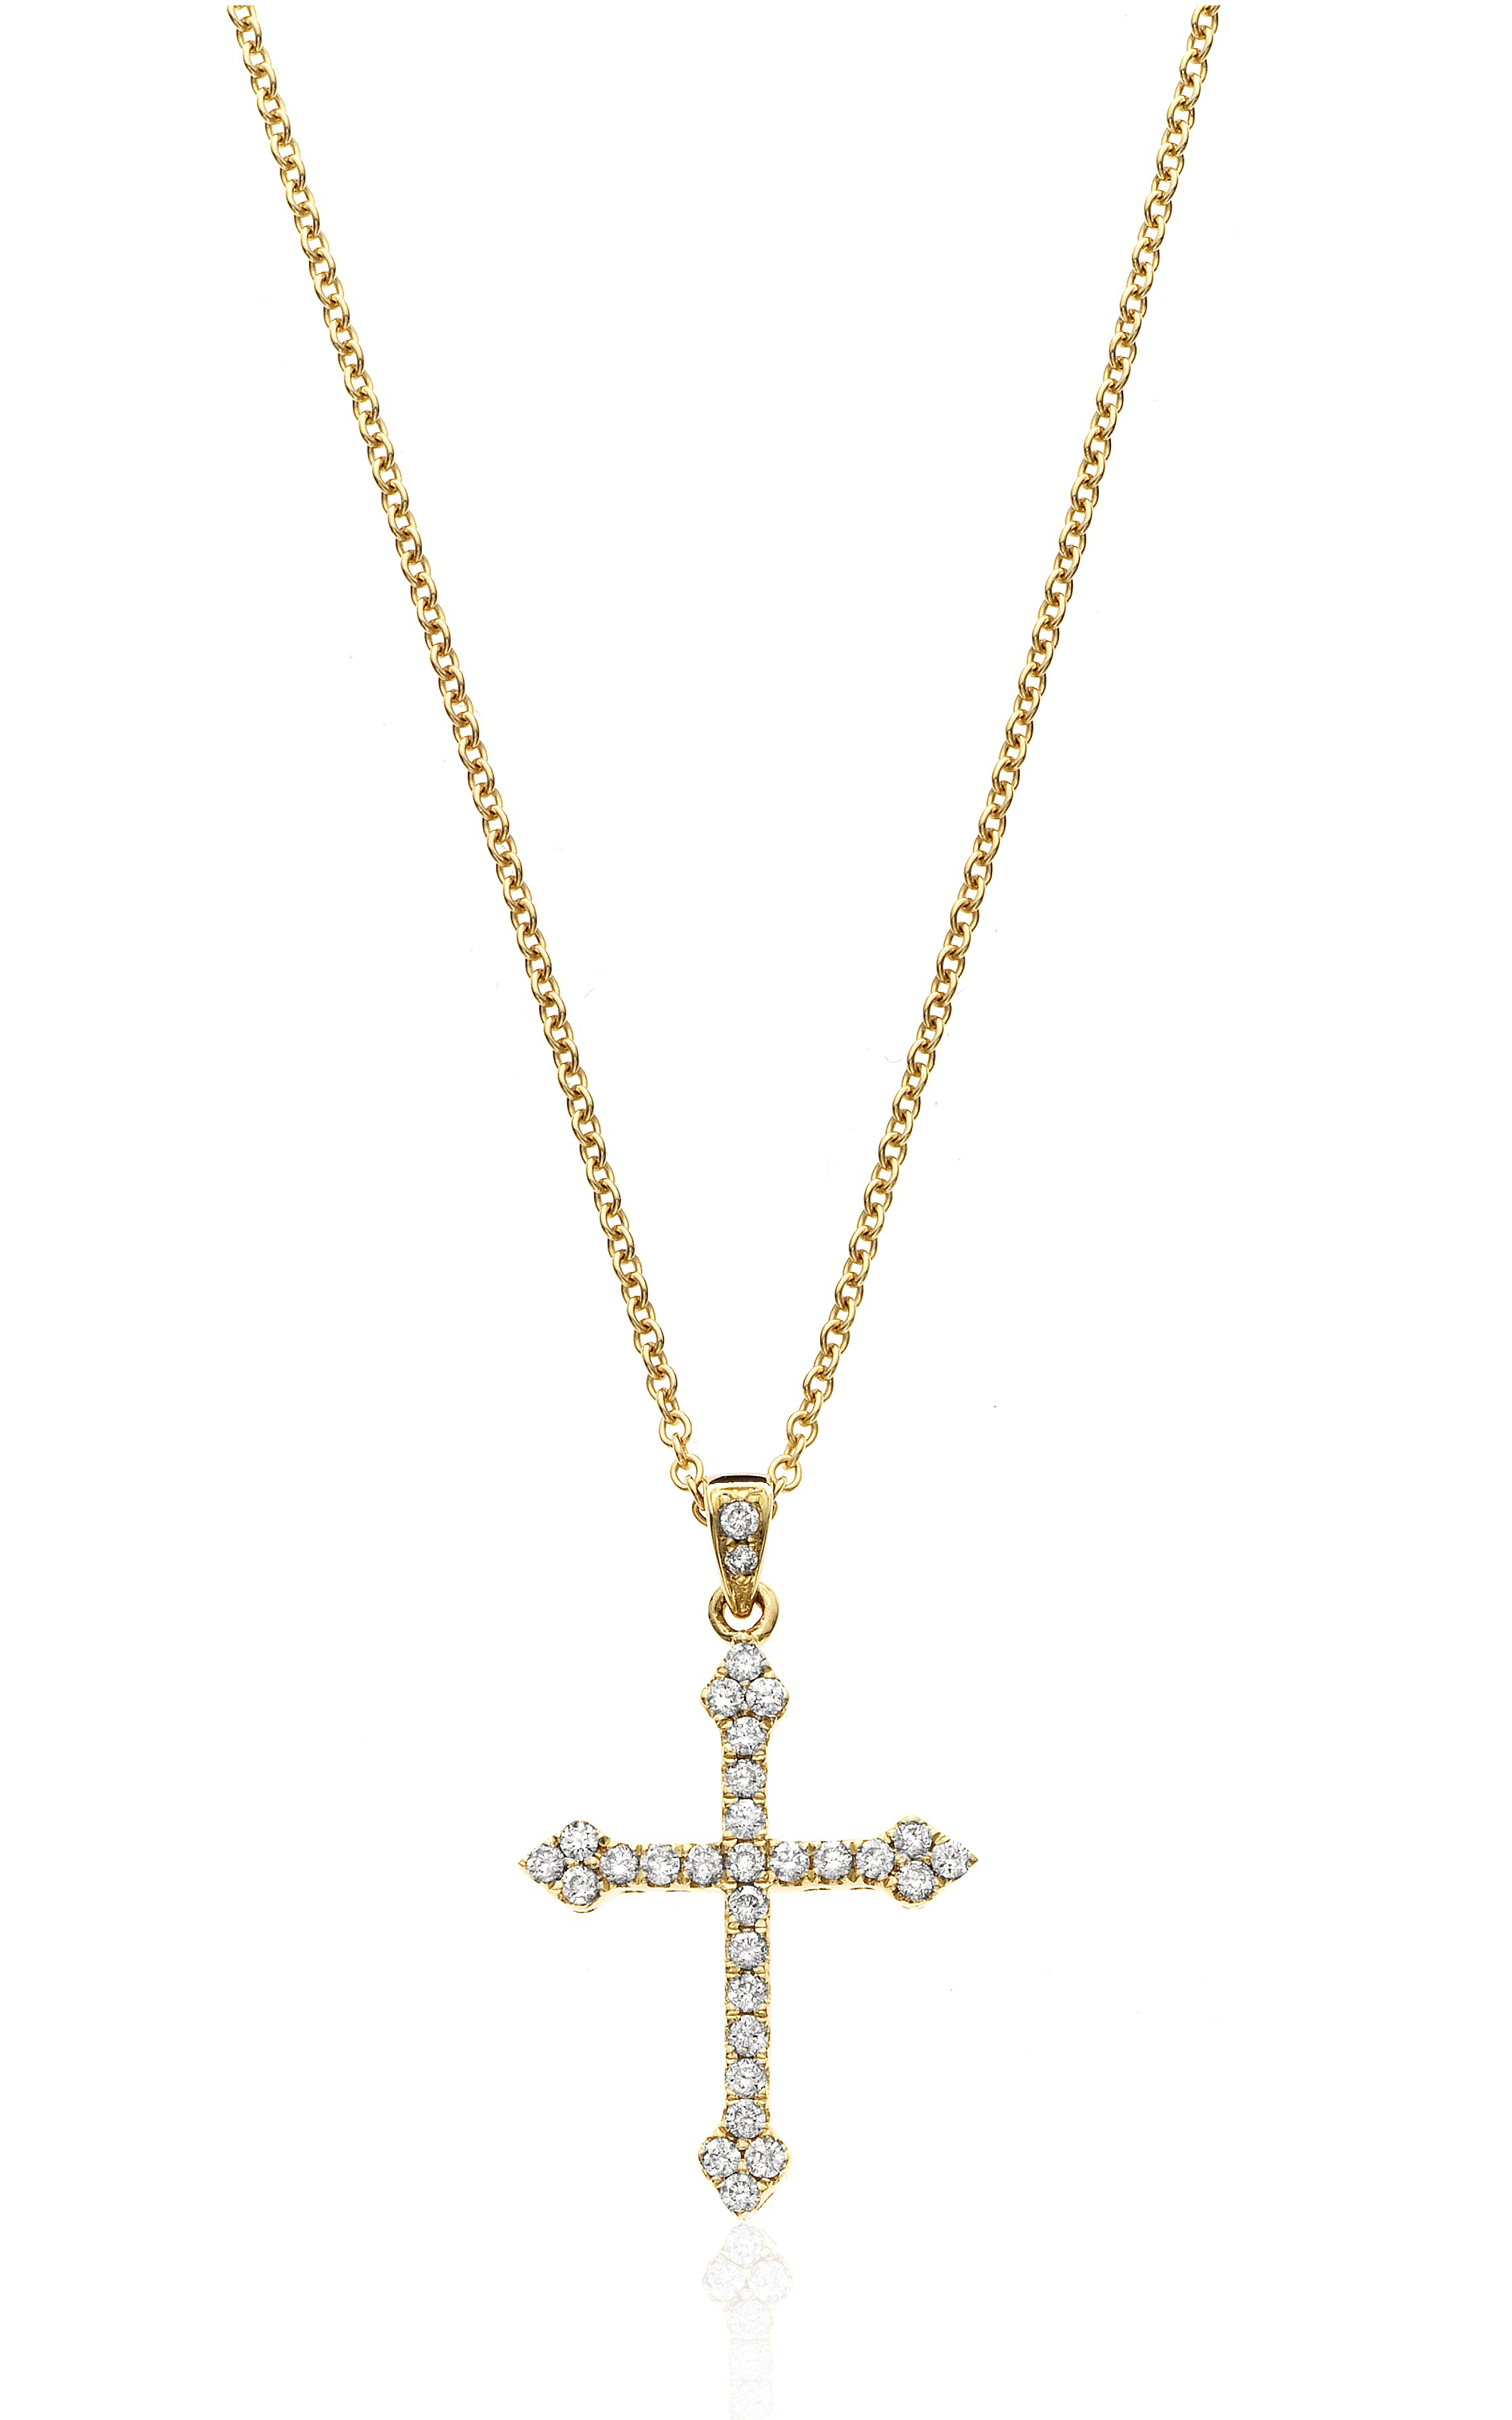 Beny Sofer Necklaces Necklace SP14-65YB product image